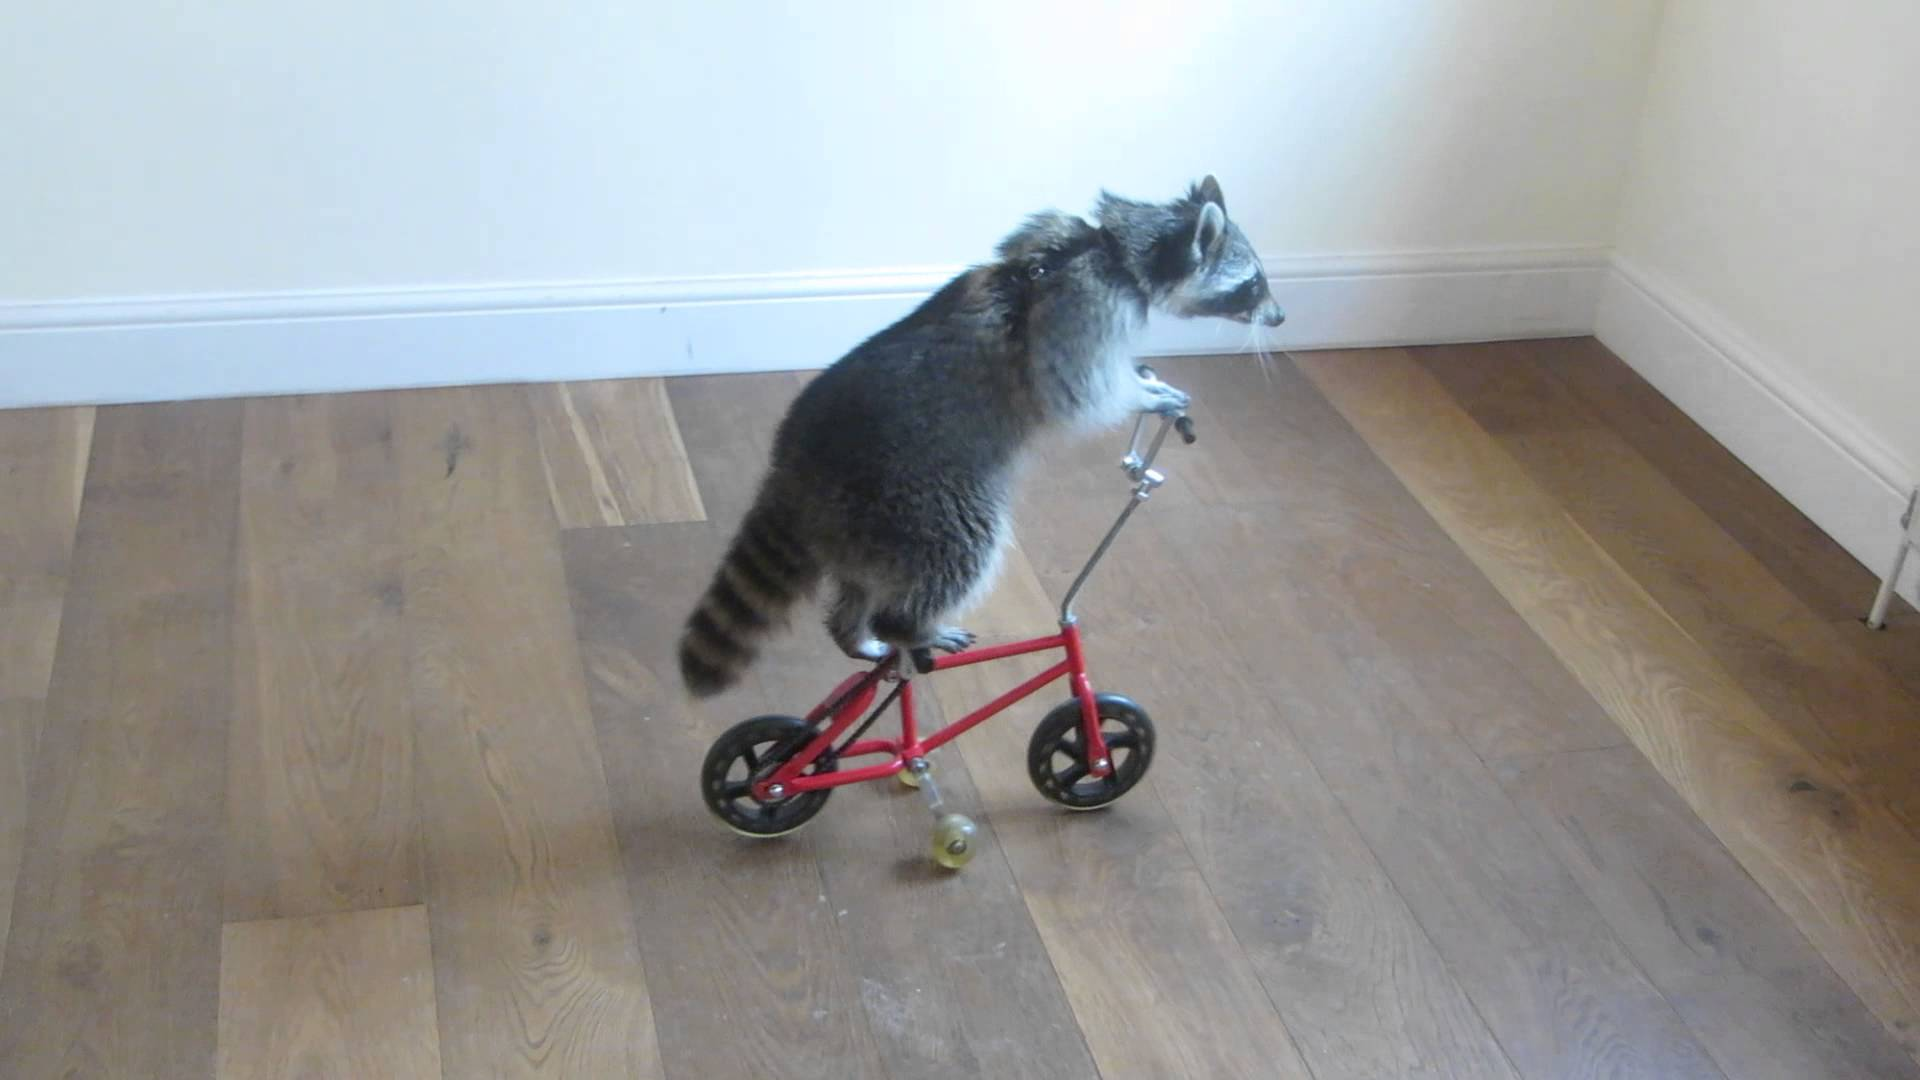 Talented Raccoon Rides a Red Bicycle, a Purple Skateboard and a Pink Scooter Across the House